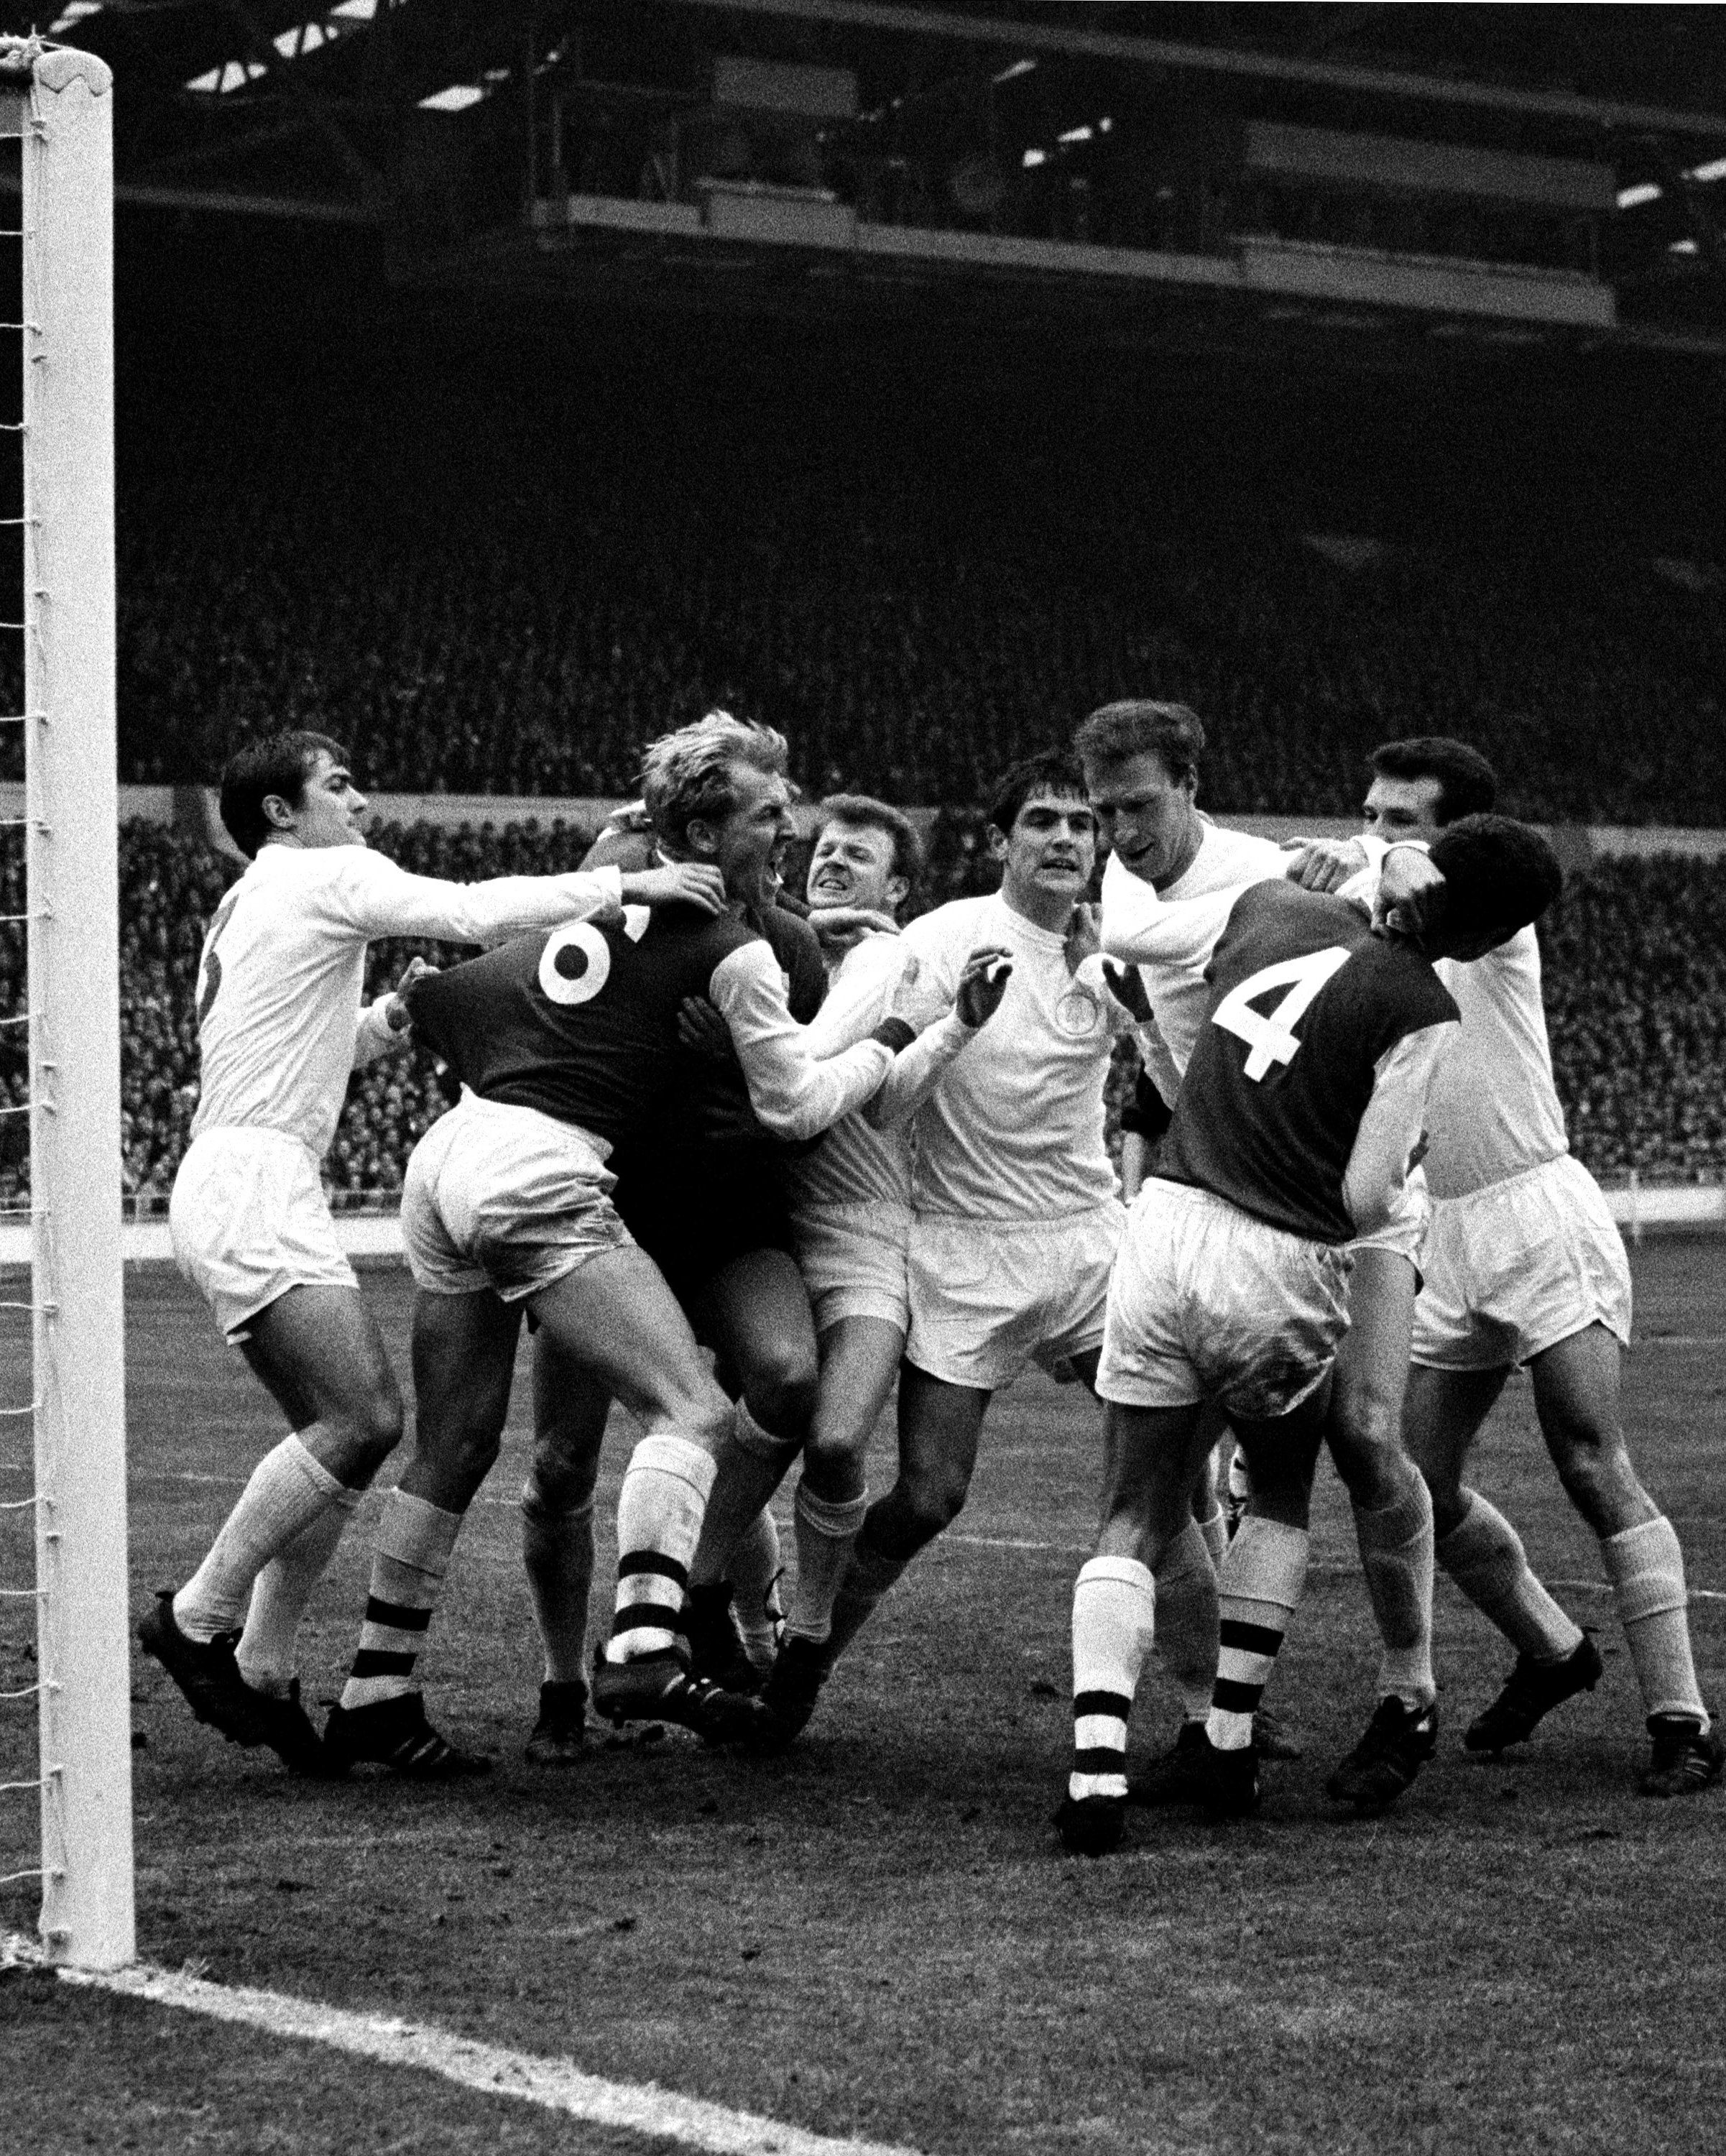 A first-half goalmouth fracas ensued as tempers flared following Frank McLintock's aerial challenge on Leeds' goalkeeper Gary Sprake. The Leeds players were smiling after the final whistle as they won the 1968 final 1-0 thanks to a disputed goal by Terry Cooper Photograph: PA